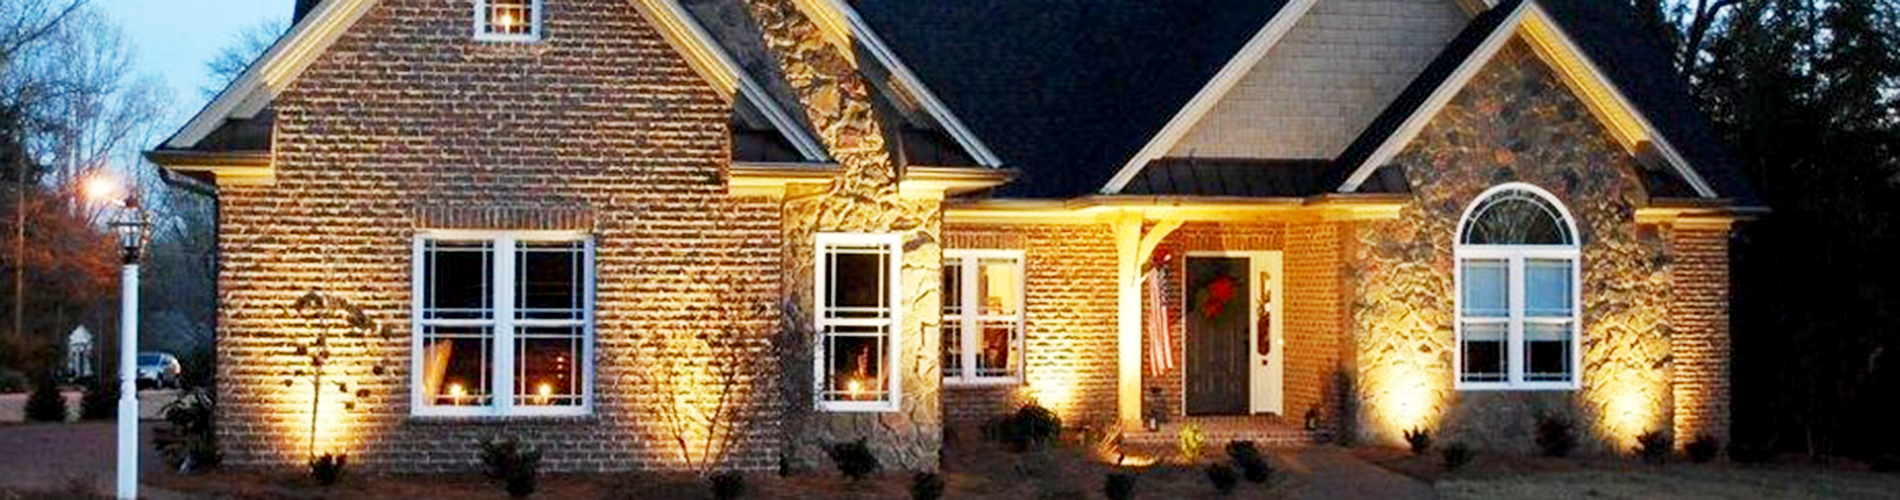 residential-led-lighting-va